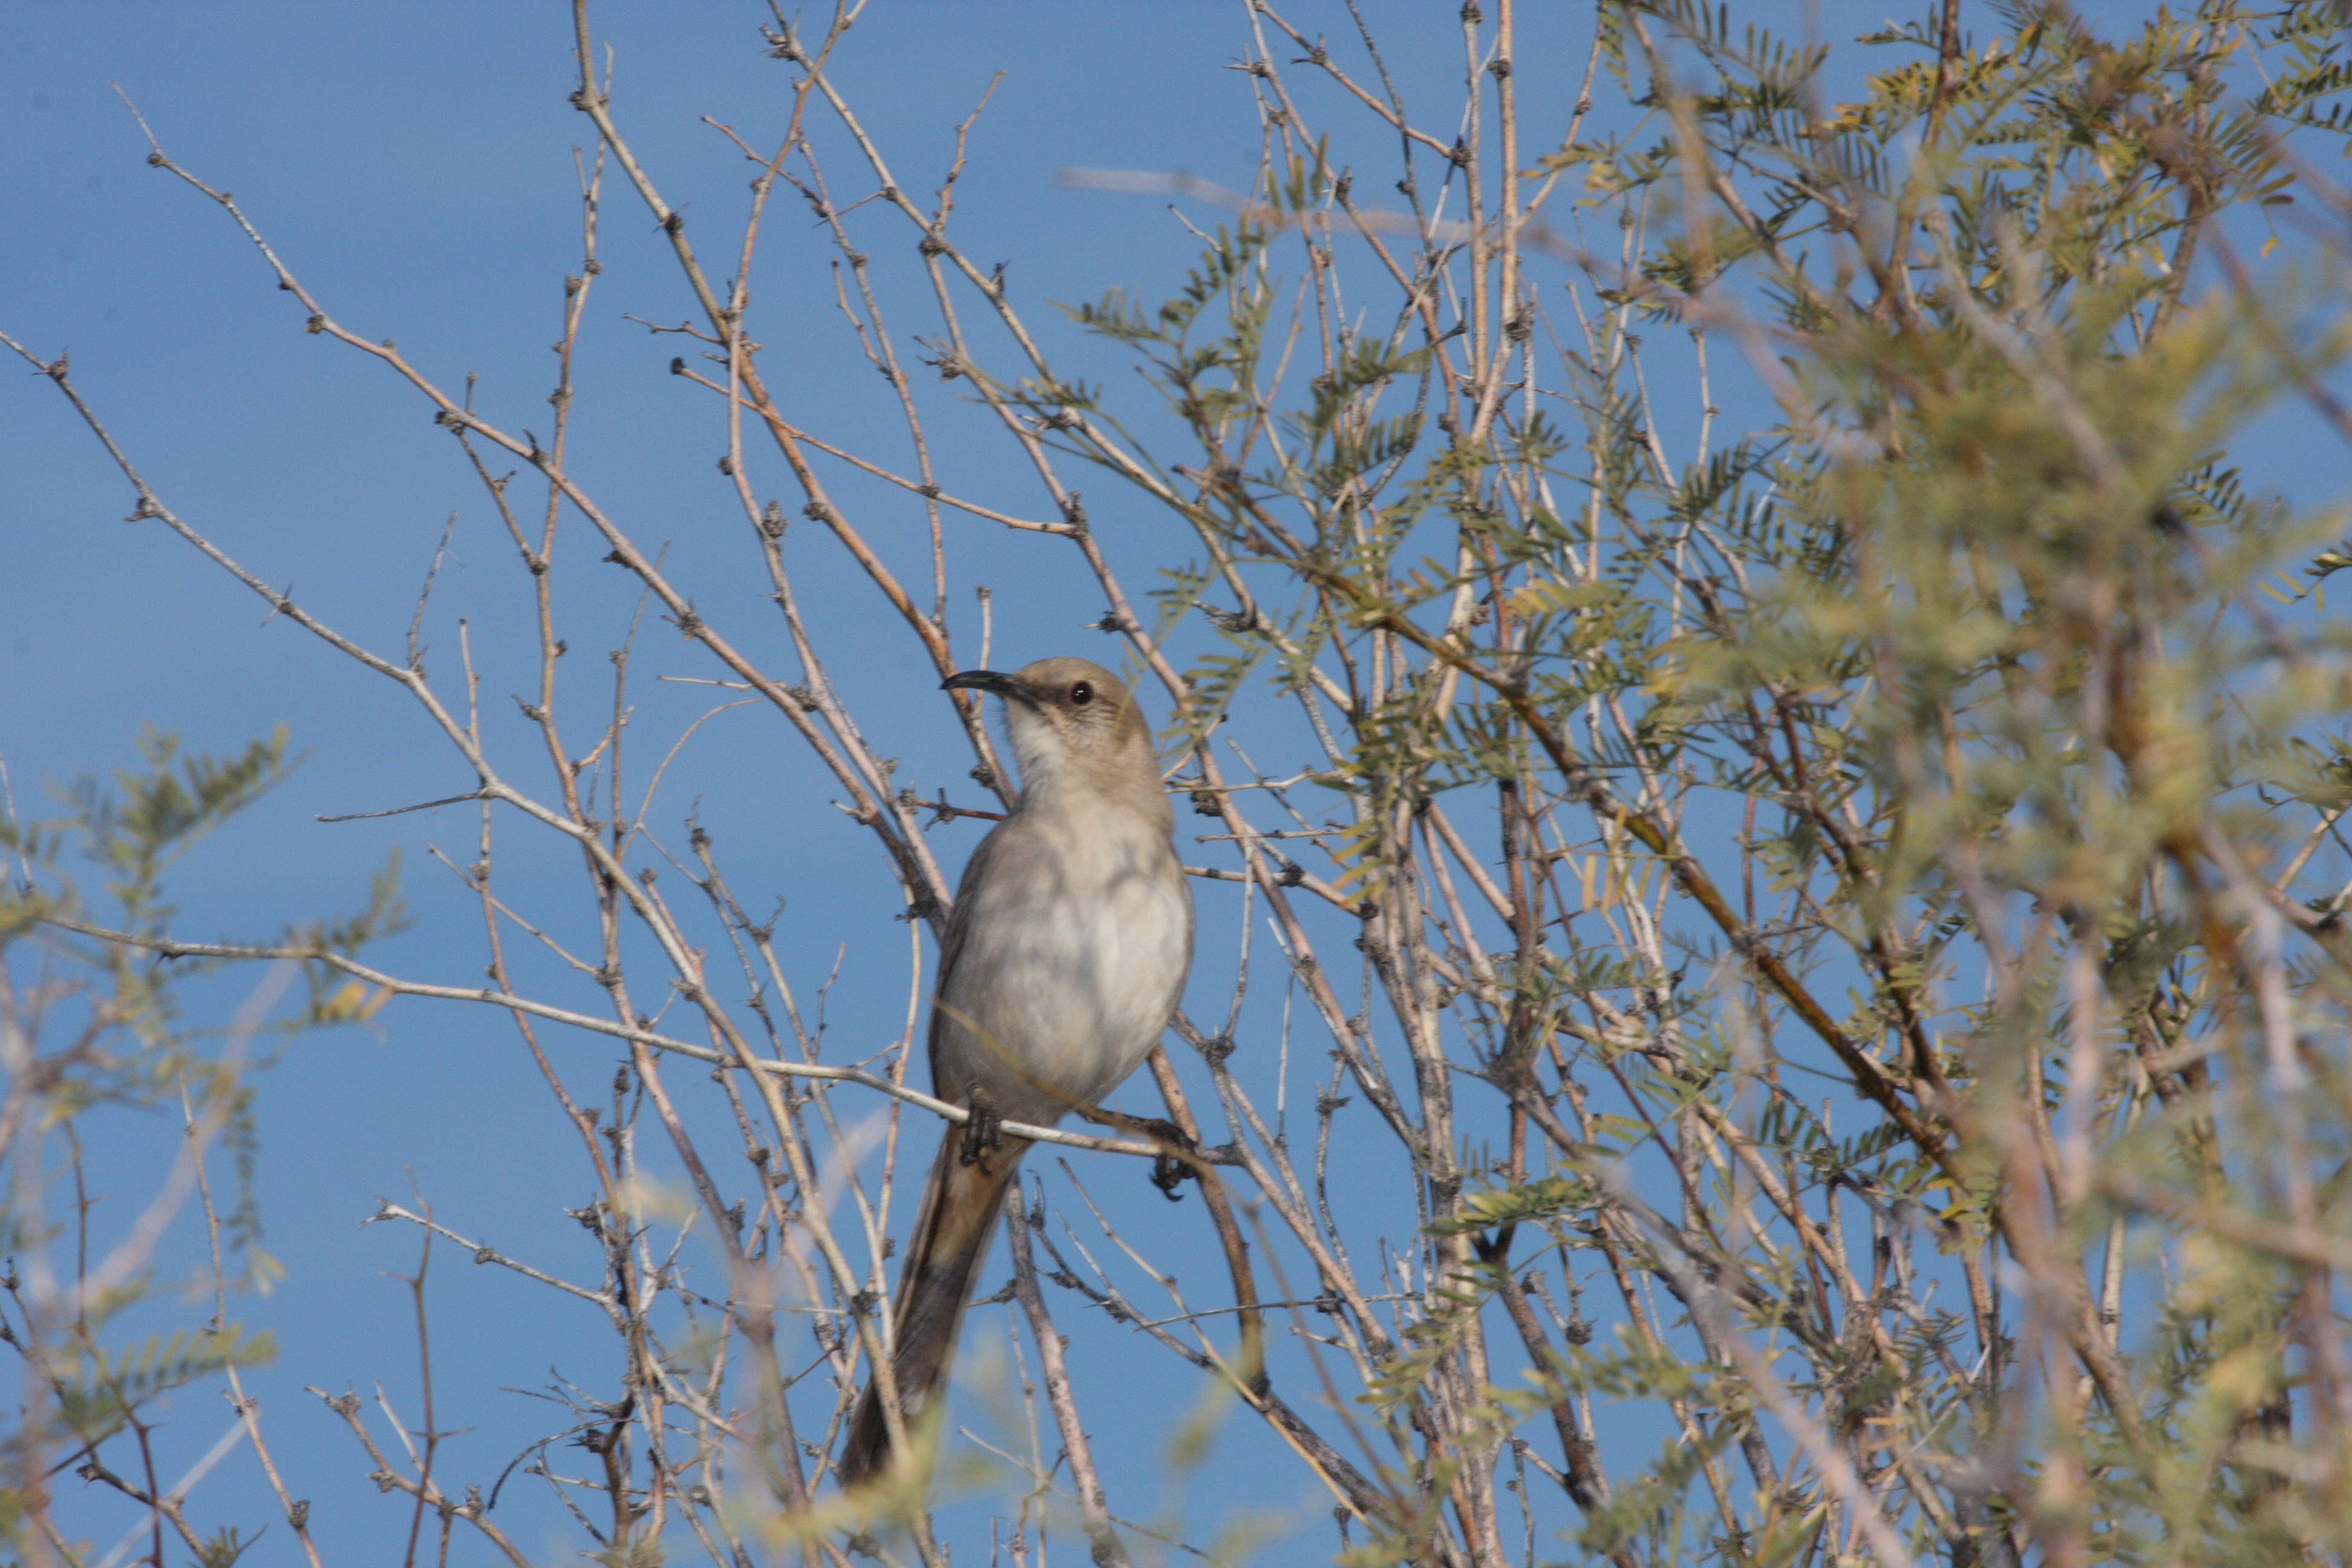 Image of Le Conte's Thrasher